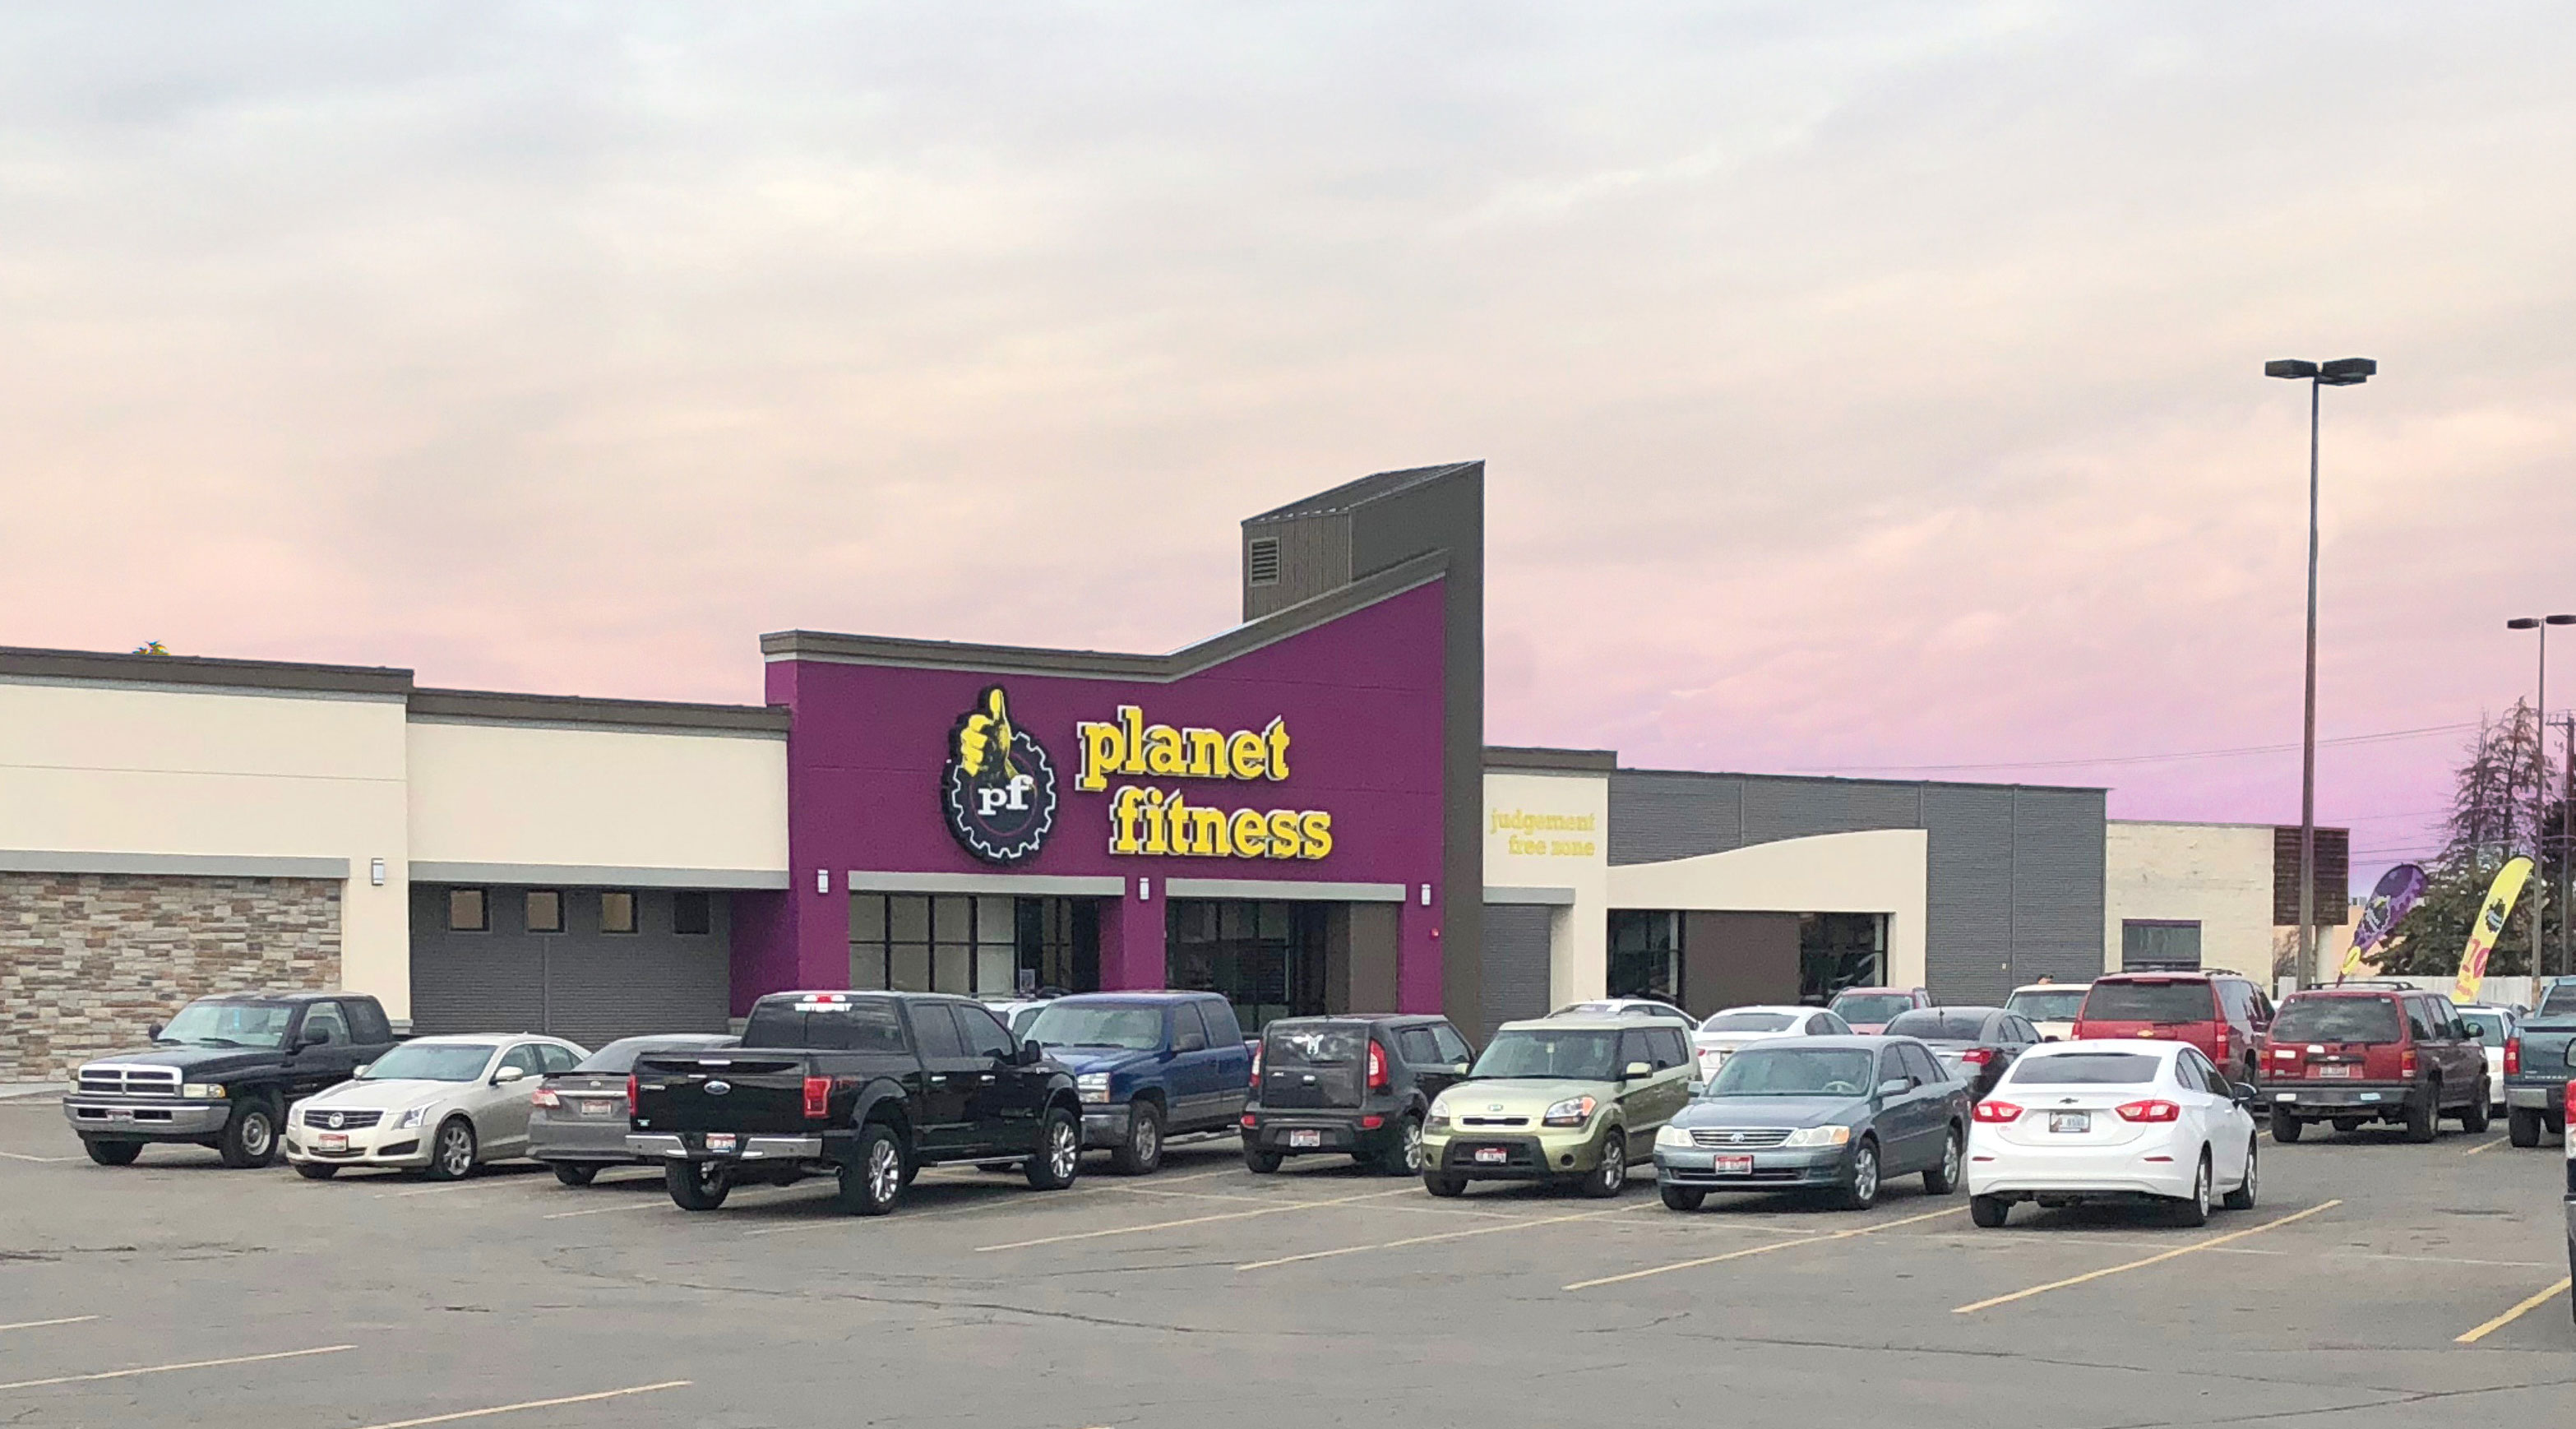 parkway-plaza-planet-fitness-idaho-falls.jpg